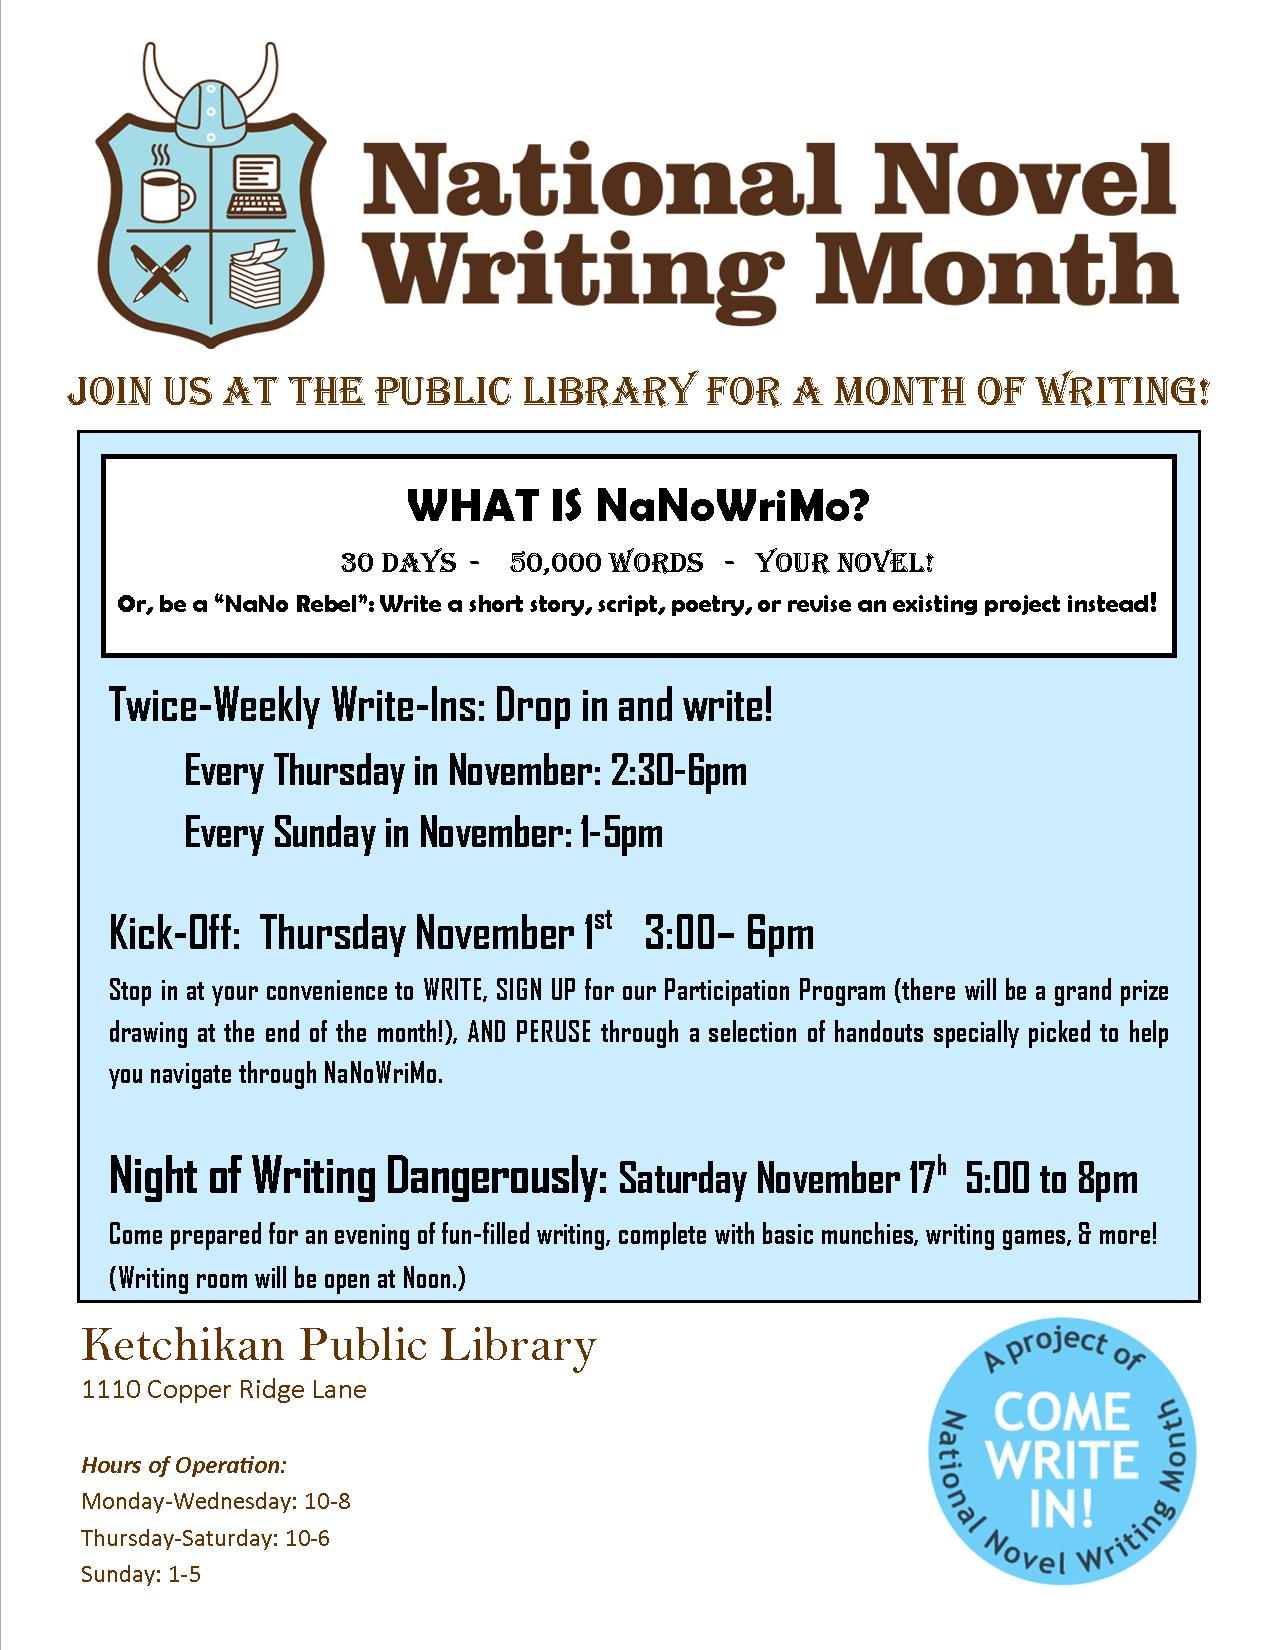 Nanowrimo 2020 Calendar Ketchikan Area Arts and Humanities Council : Arts Calendar : ARTS